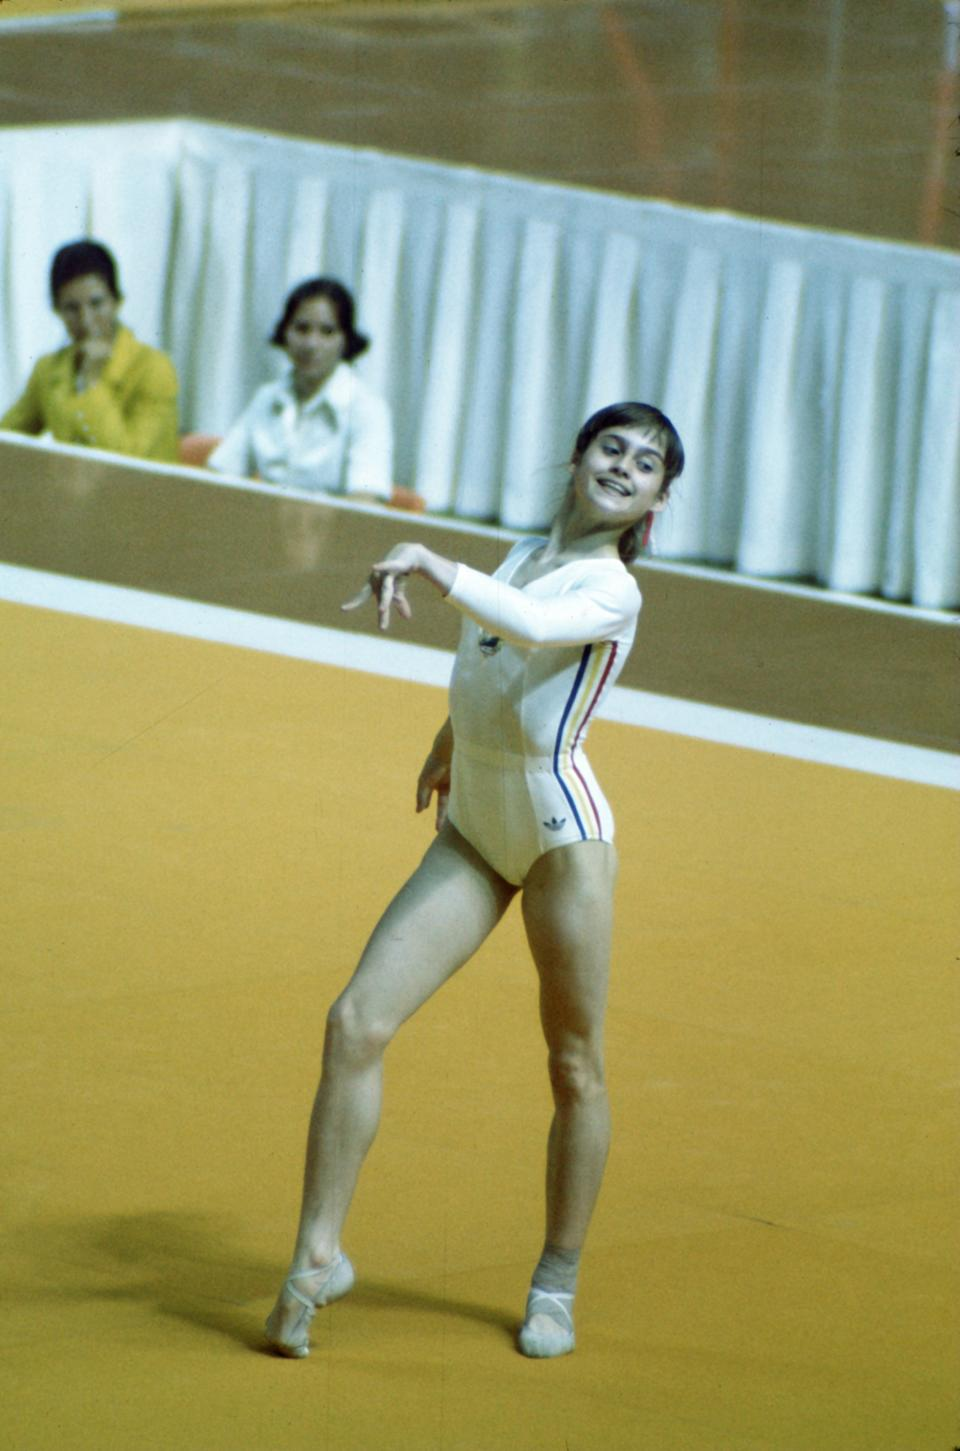 <b>1976 Montreal Olympics</b><br> 1976: Nadia Comaneci of Romania performs the floor excercise during the 1976 Summer Olympics in Montreal, Quebec, Canada. Mandatory Credit: Allsport USA/ALLSPORT